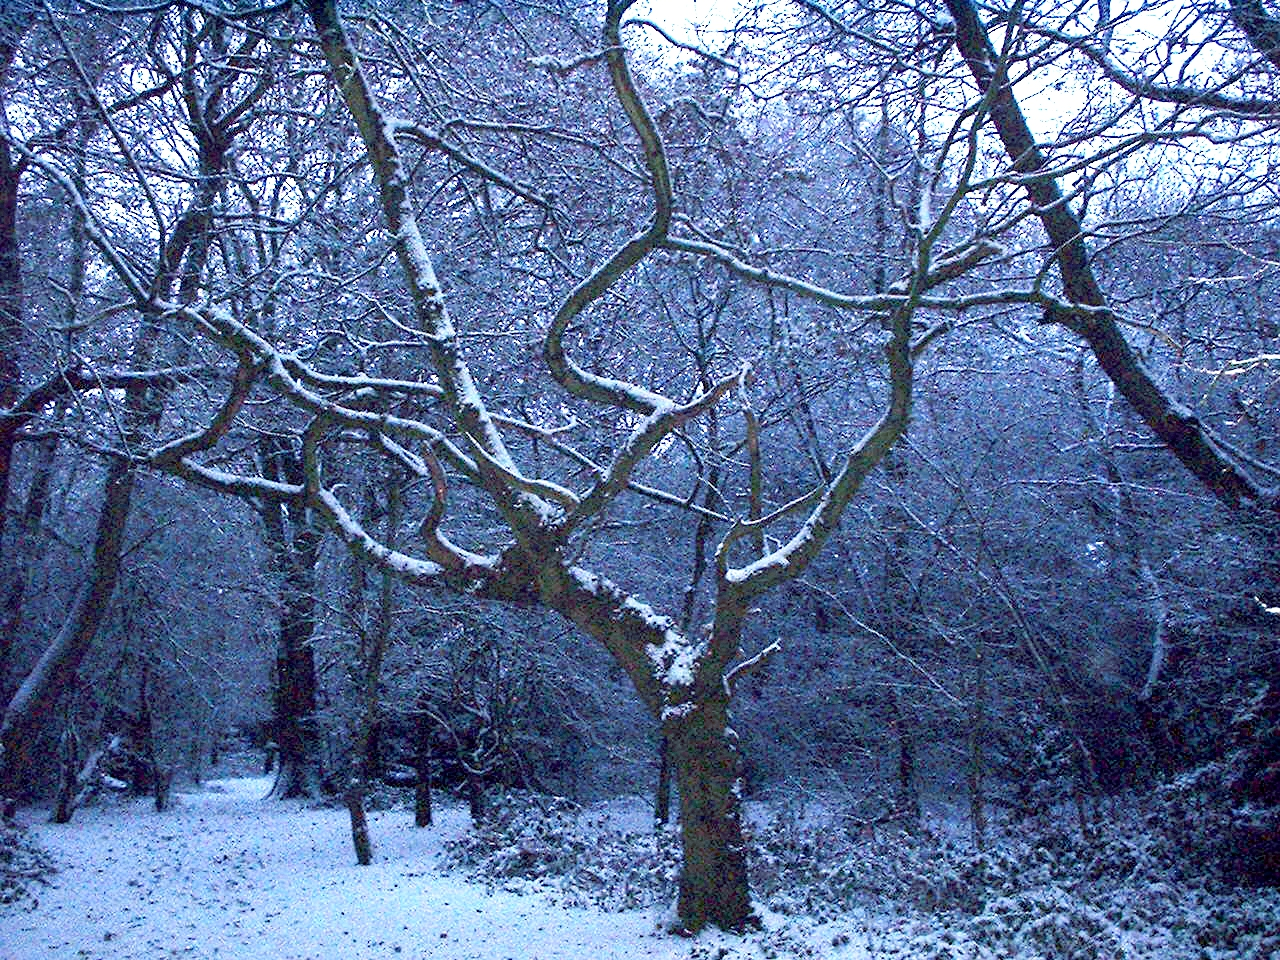 The Winter Woodland